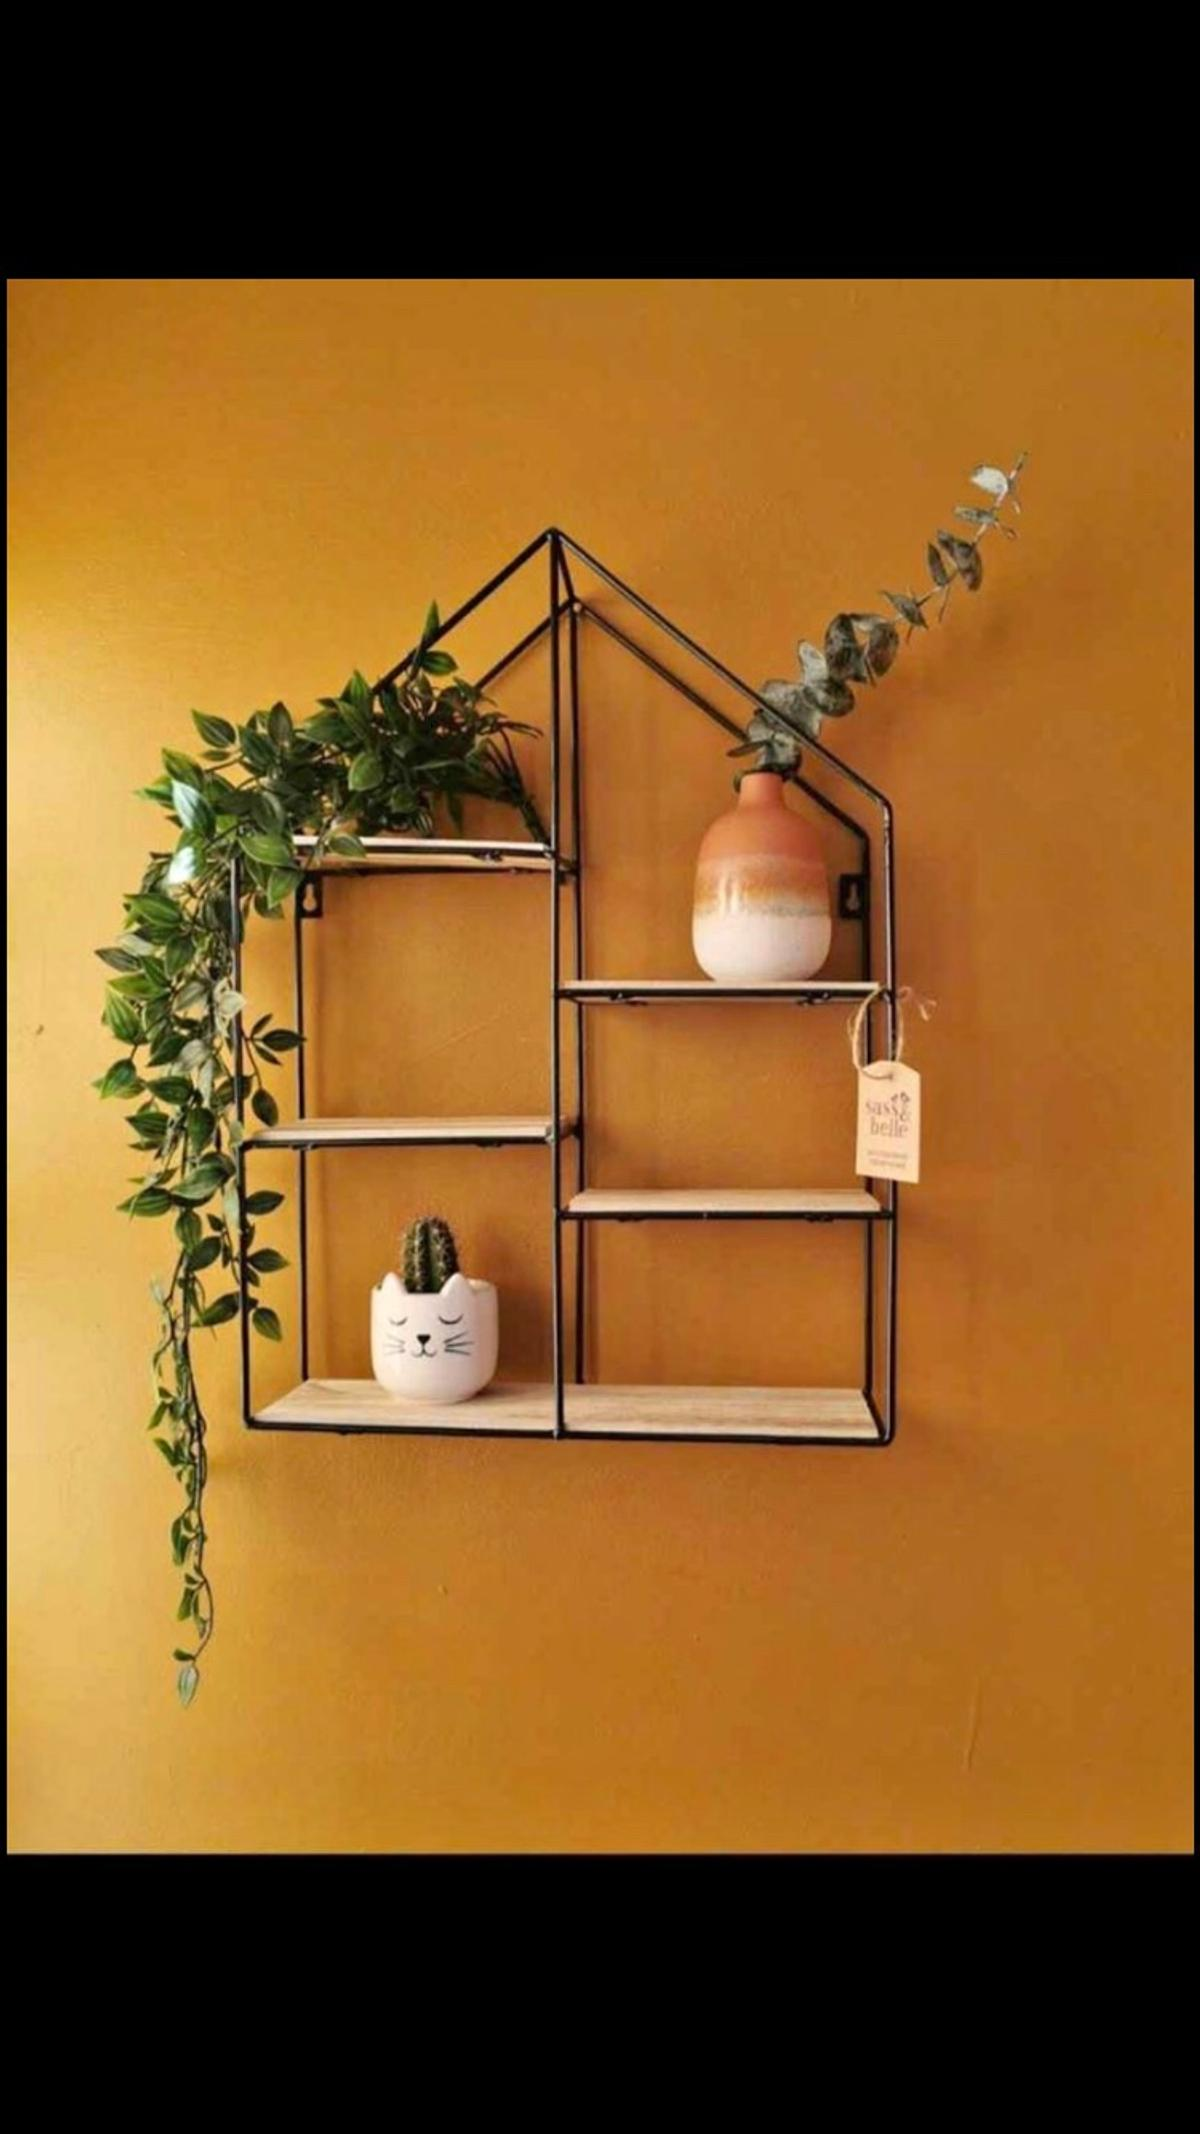 Featuring two handy hook openings and six platforms to decorate or leave minimal. We think it would look super cute displaying your favourite plants, photos or any other pretty trinkets. Product codeZHA003 Barcode5055992767474 CollectionHome Essentials ColourBlack DimensionsL35 x W10 x H48 cm MaterialWire, Wood